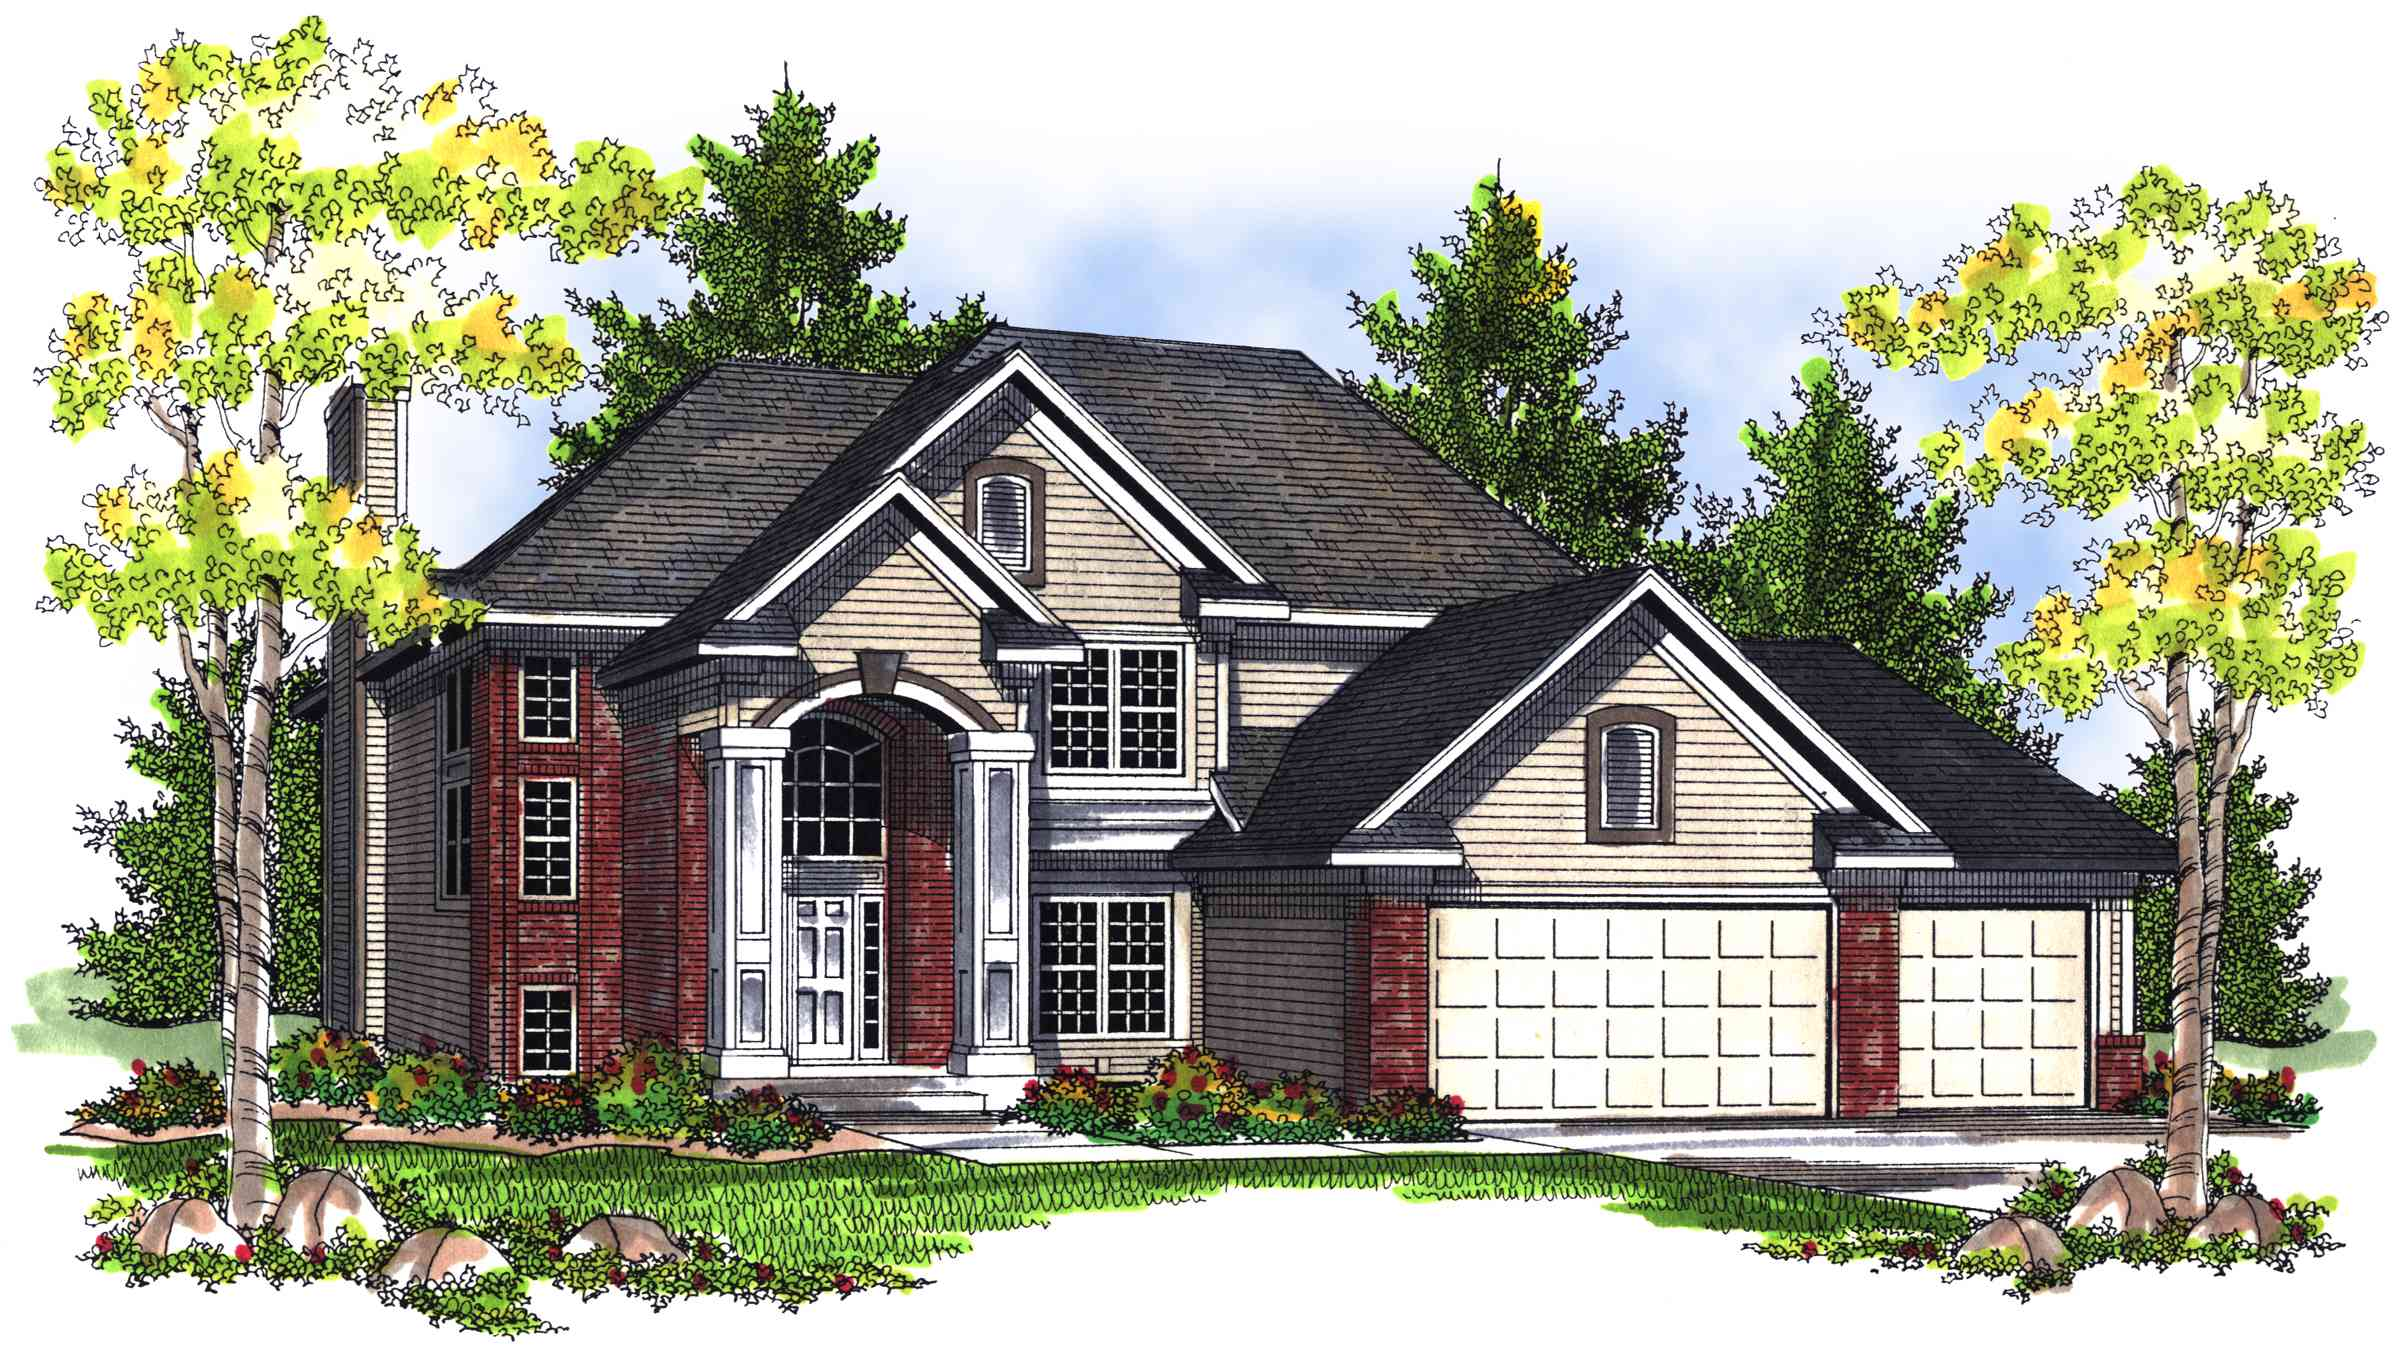 Traditional 2 story home plan with grand entry 89359ah for Traditional house plans two story